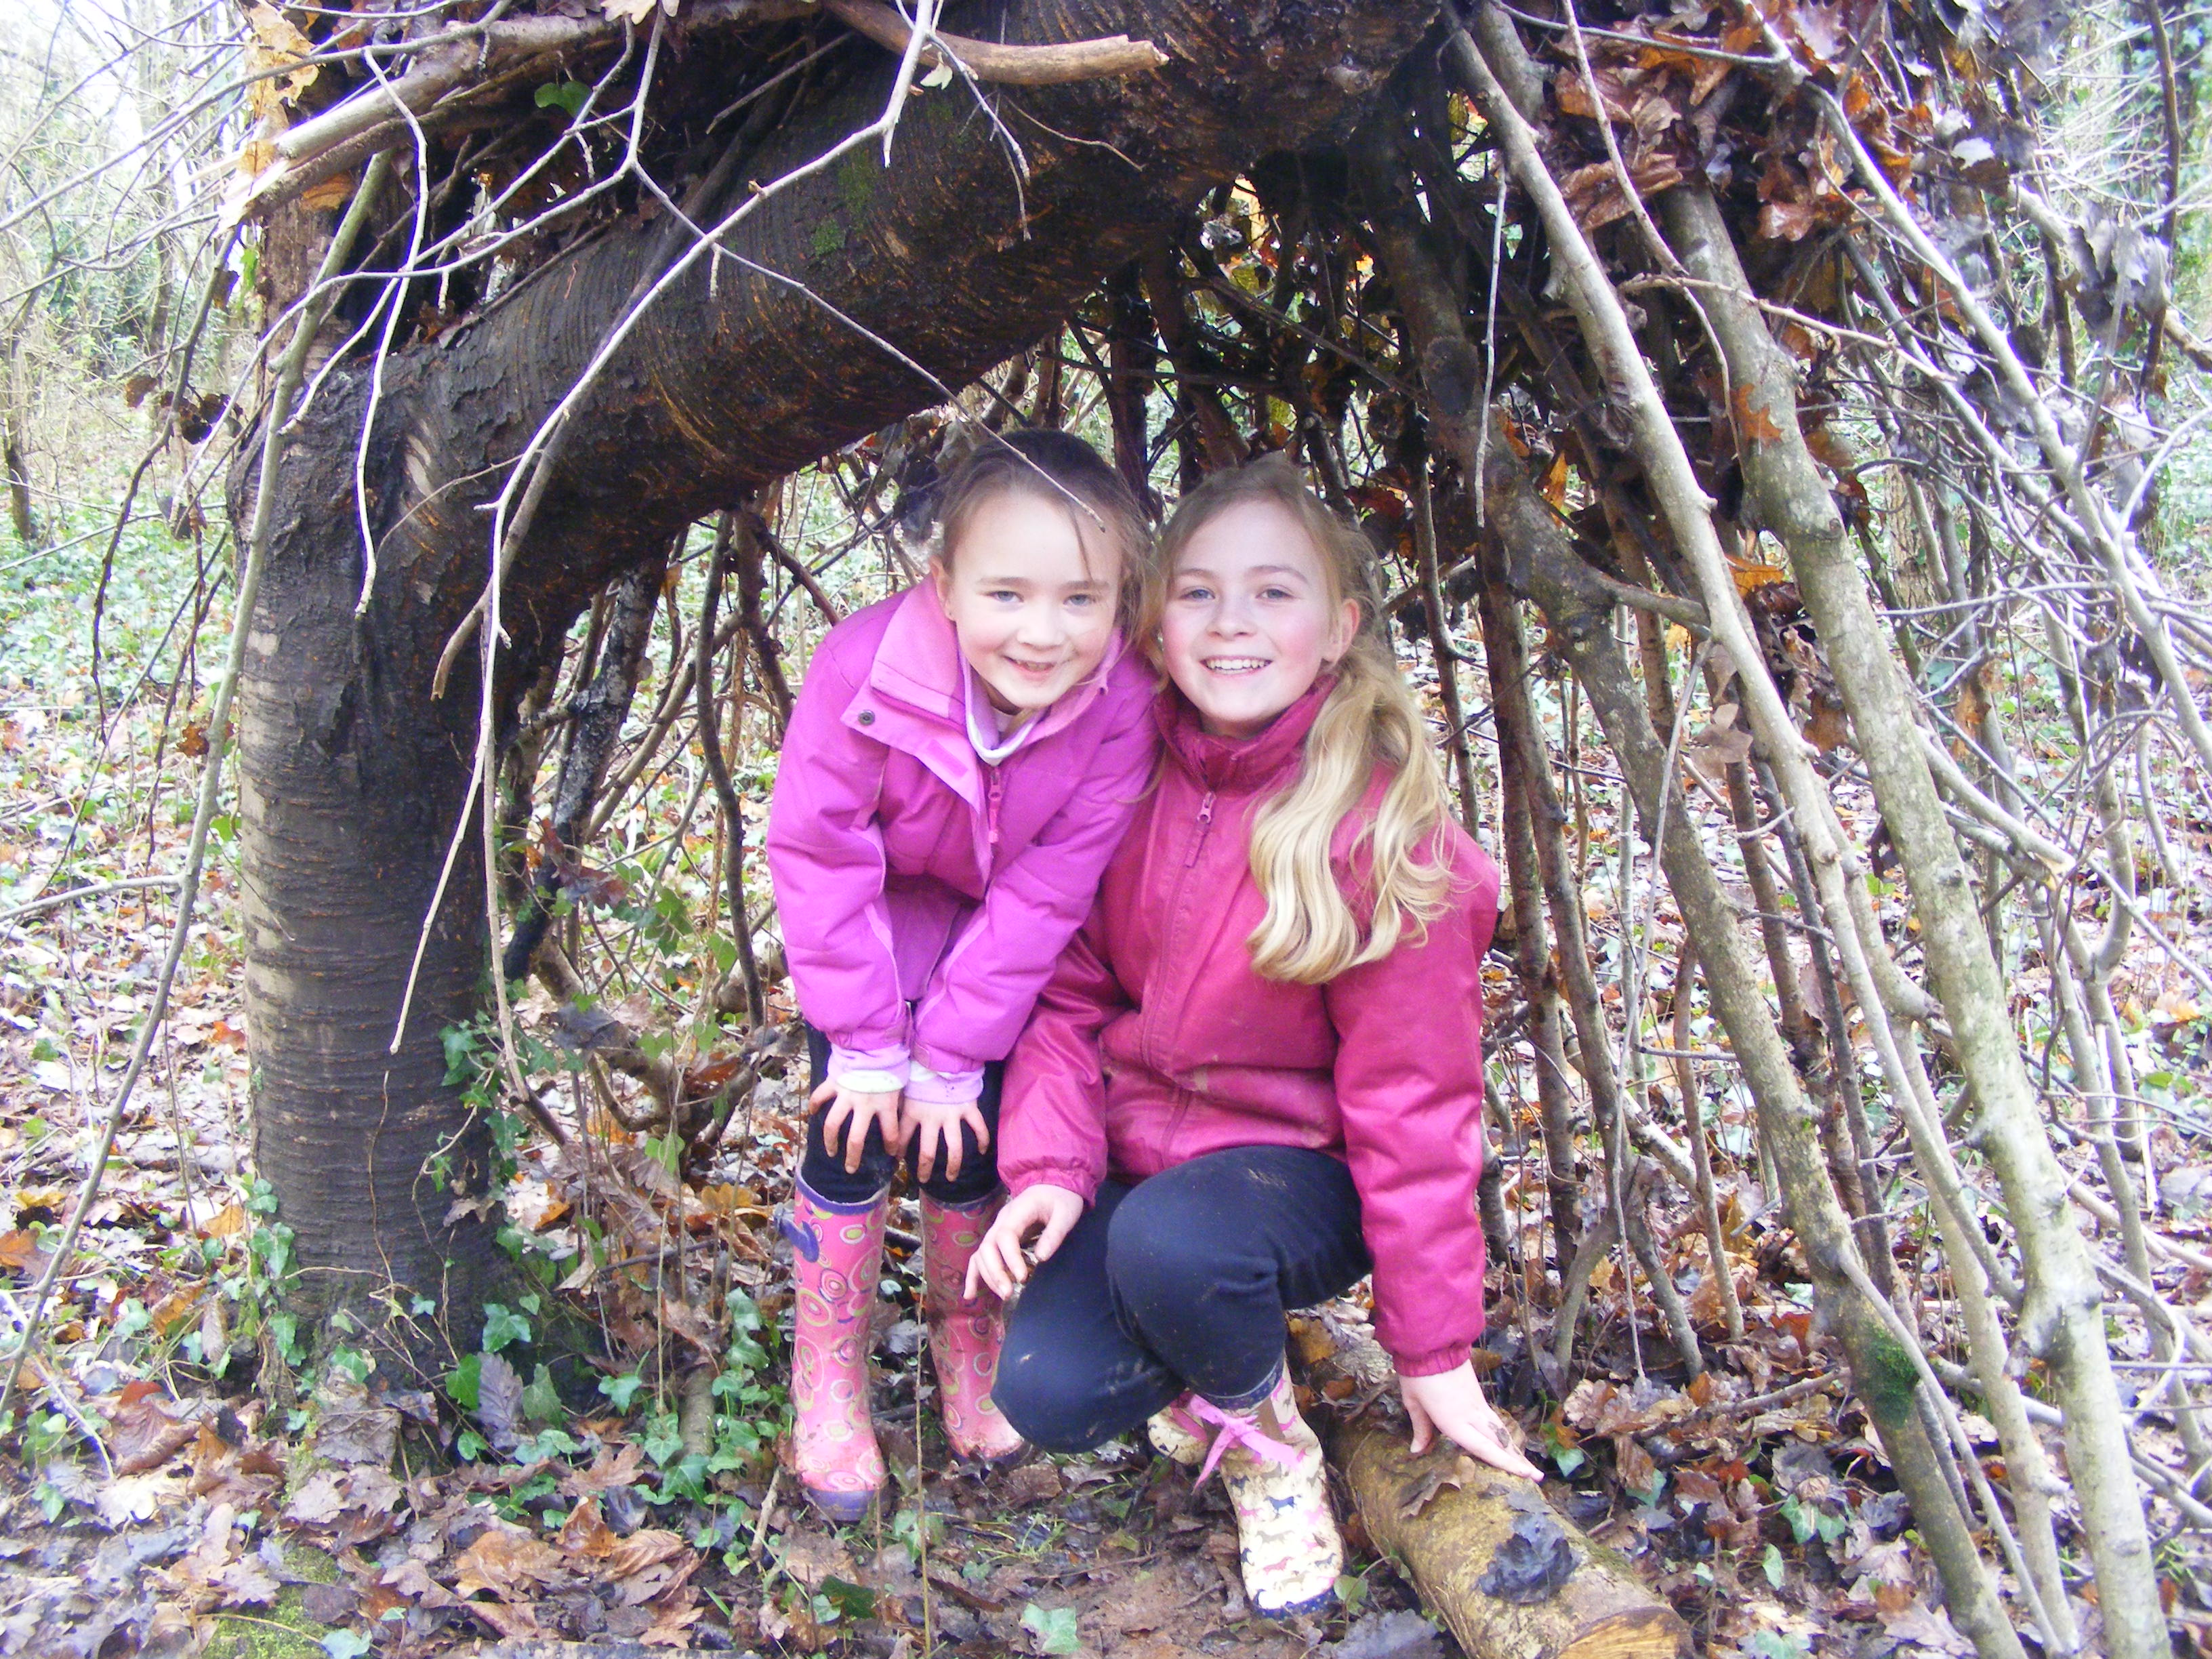 Cancelled: Family Bushcraft Day (Wed 27 May)